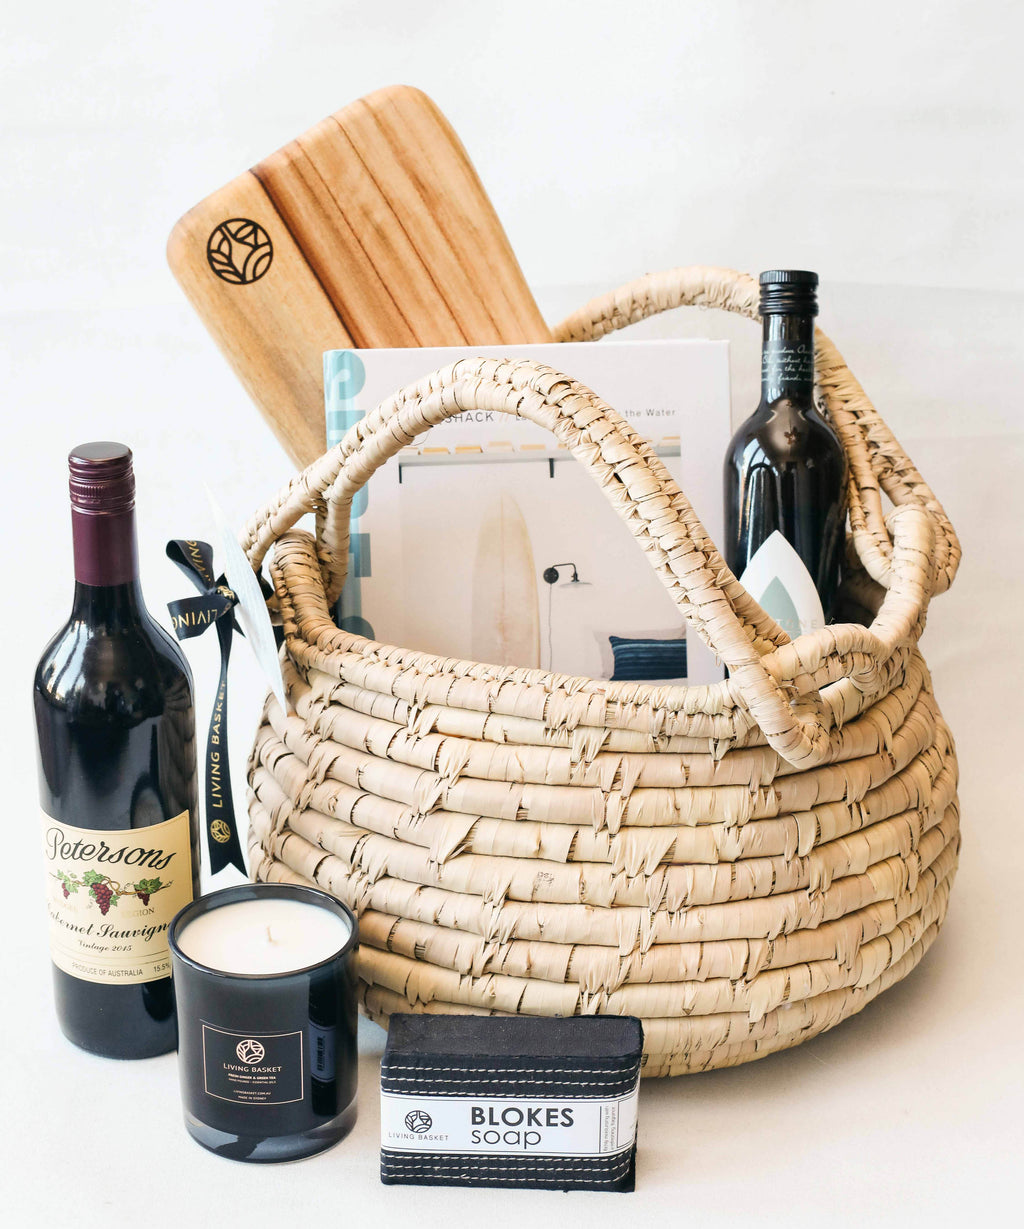 PREMIUM FAMILY BASKET WITH BOUTIQUE AUSTRALIAN WINE